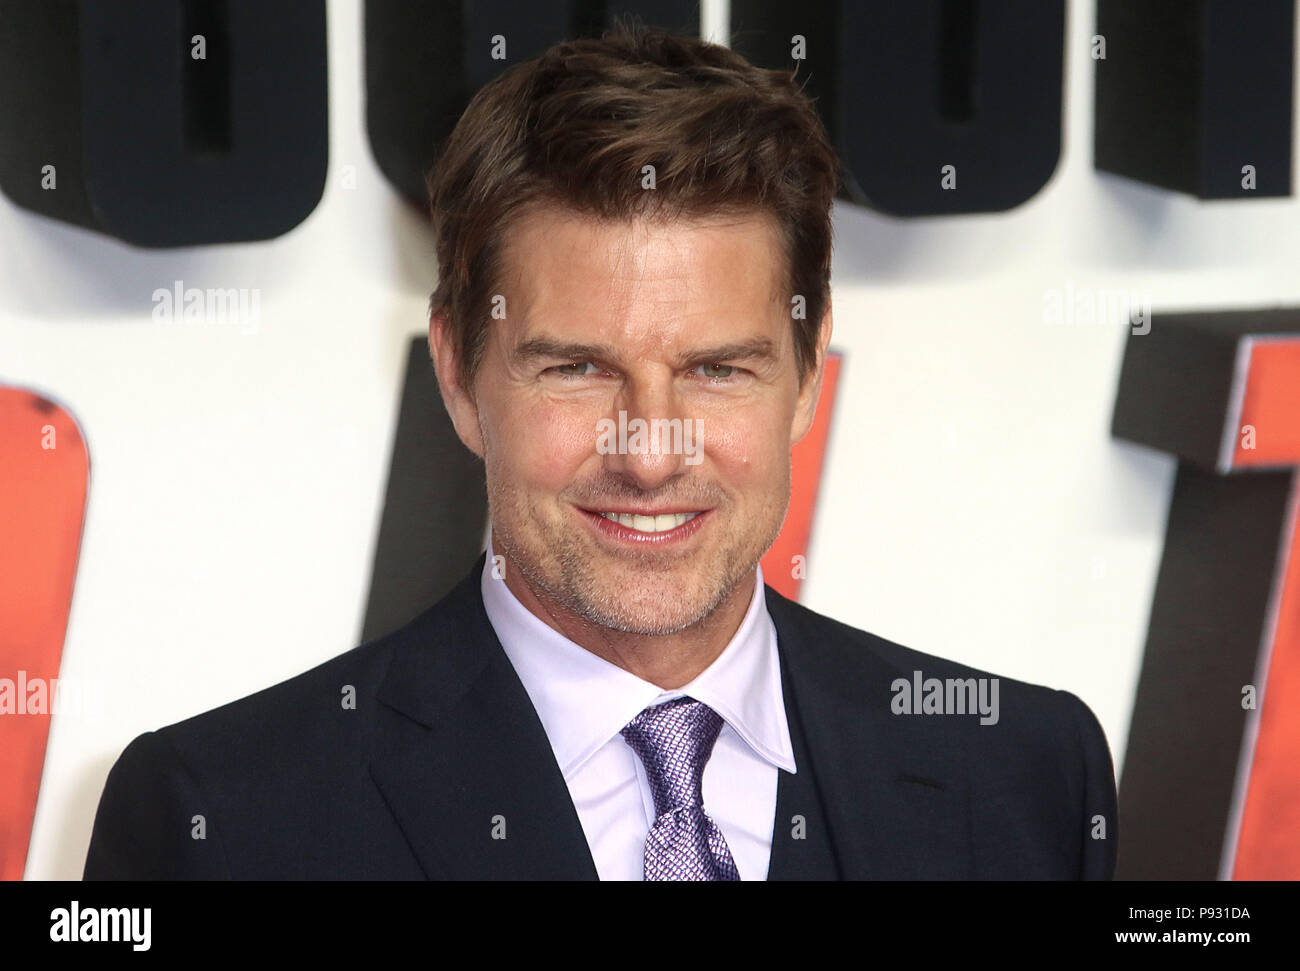 Jul 13, 2018  - Tom Cruise attending 'Mission Impossible - Fallout' UK Premiere at BFI IMAX in London, England, UK Stock Photo